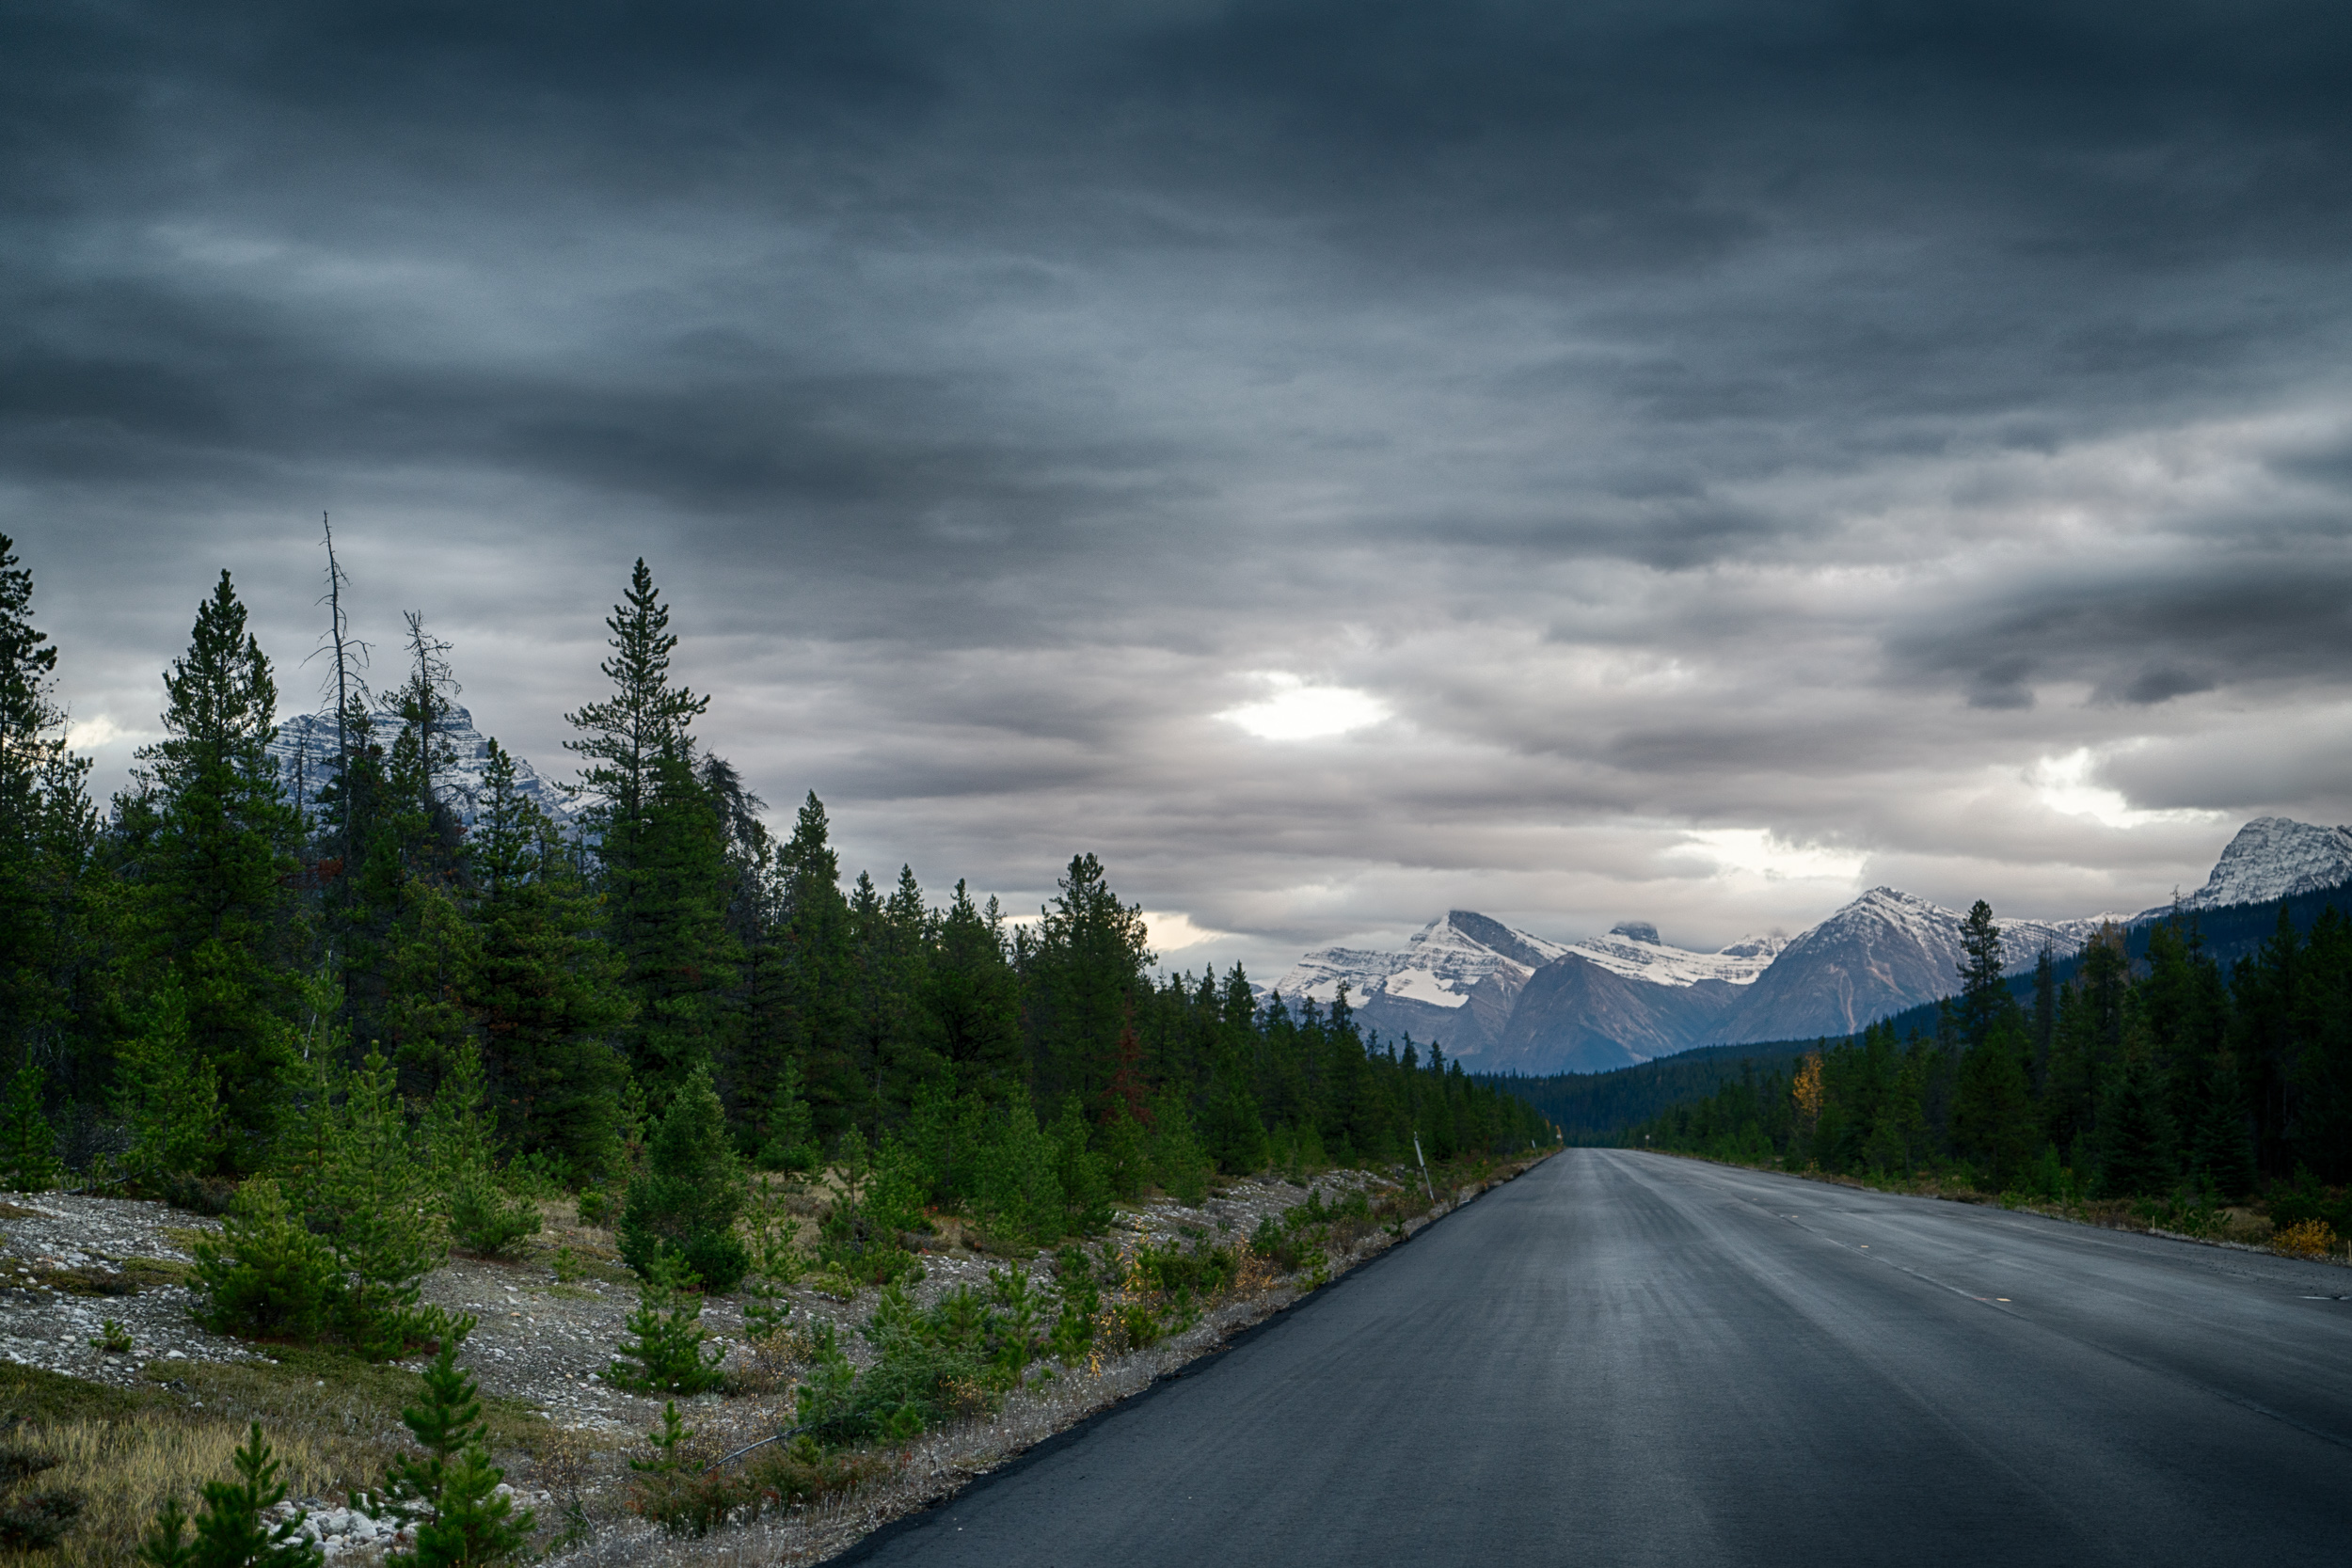 The road to Jasper (northbound)